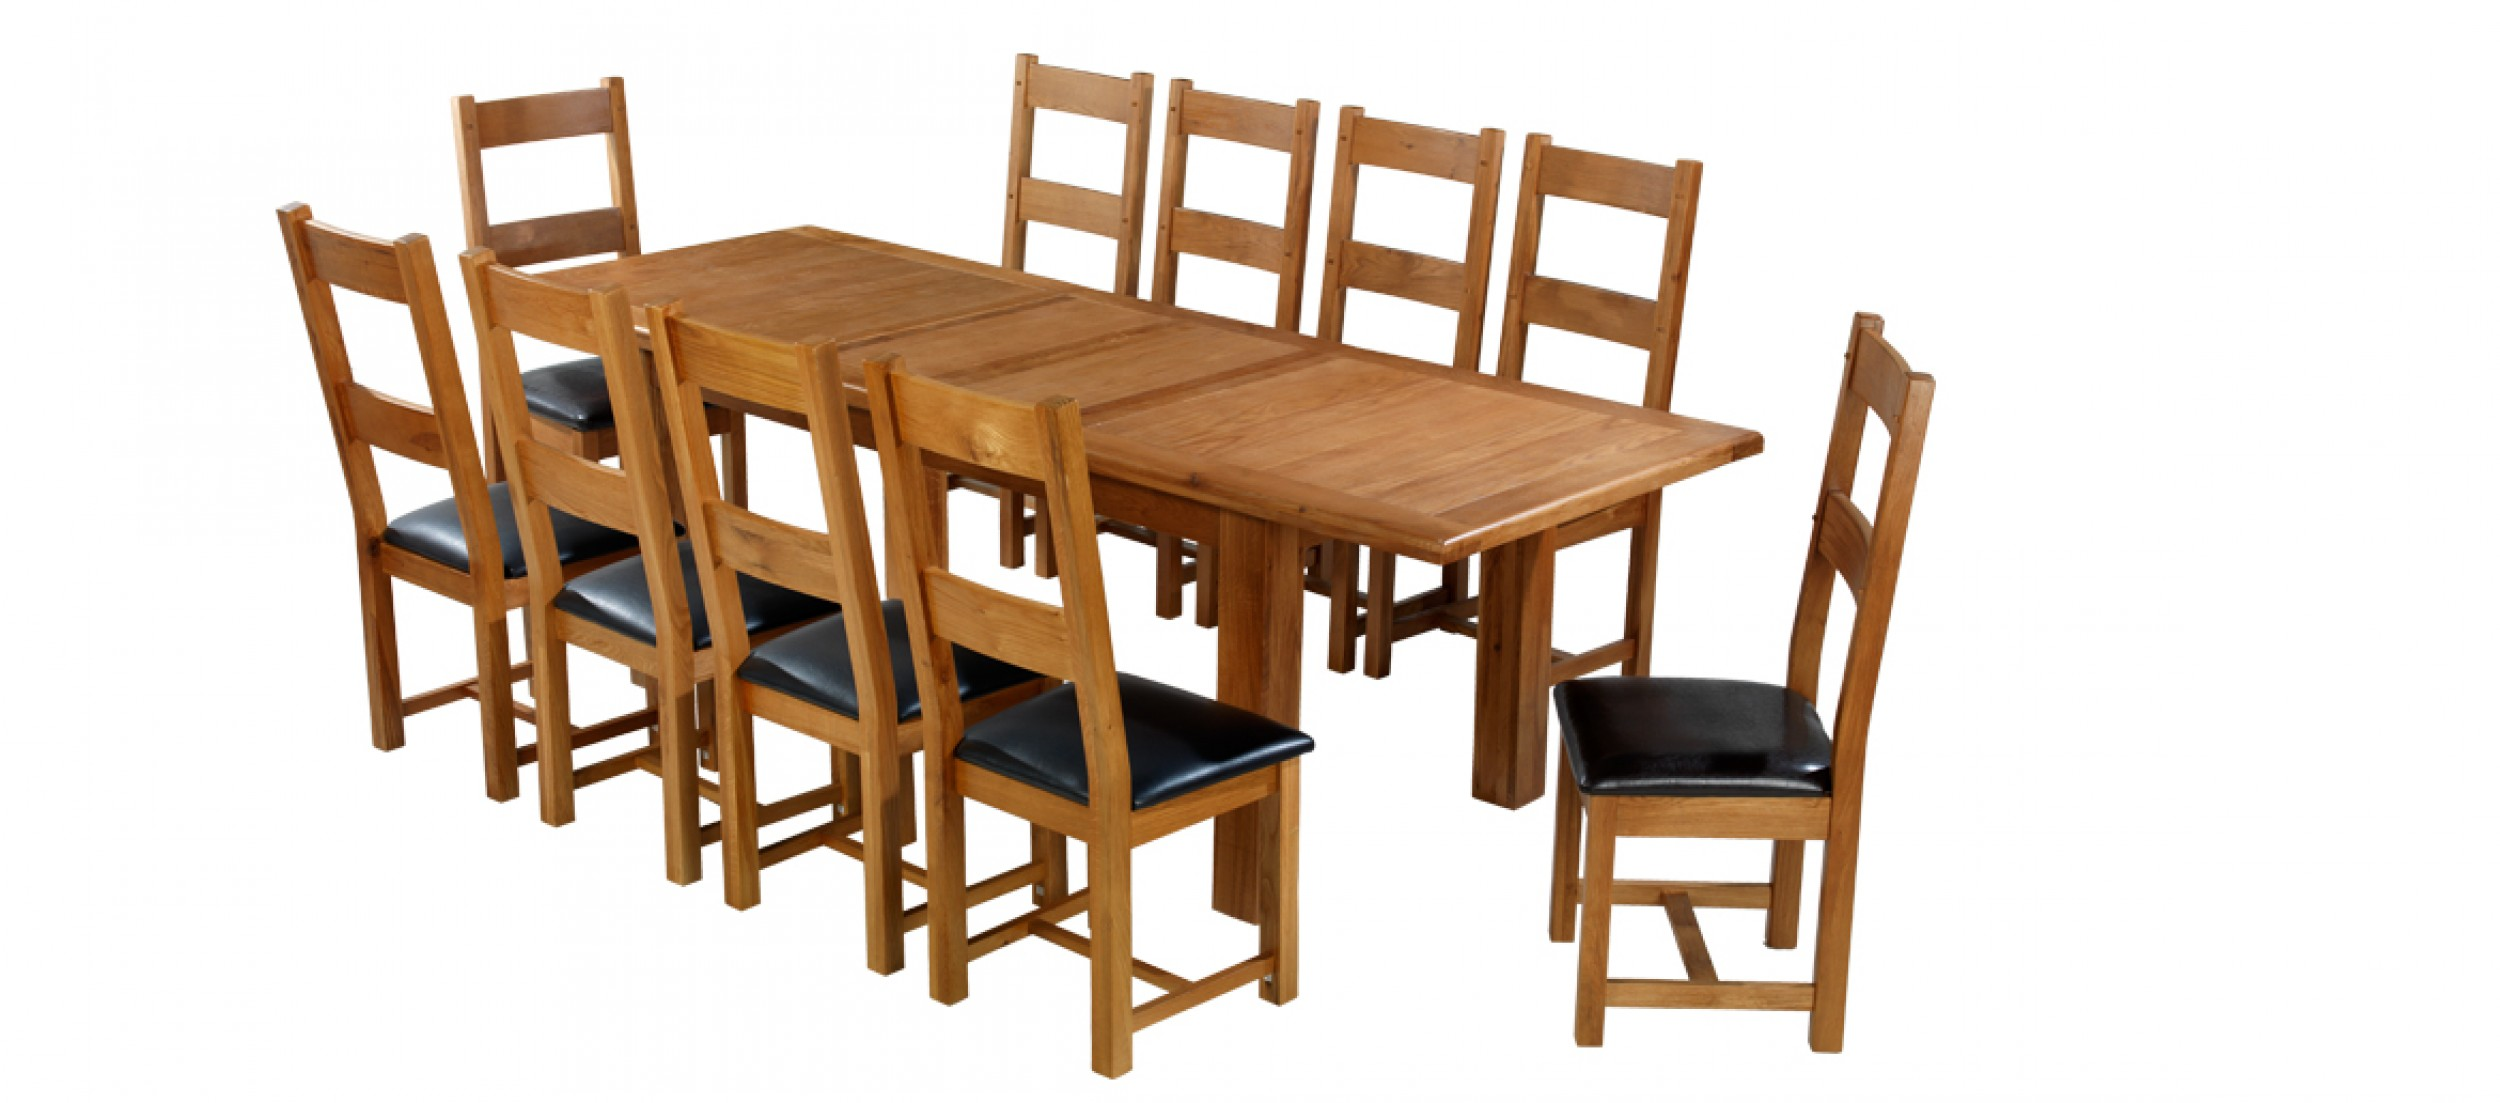 10 chair dining table set cover hire tyne and wear barham oak 180 250 cm extending chairs quercus living